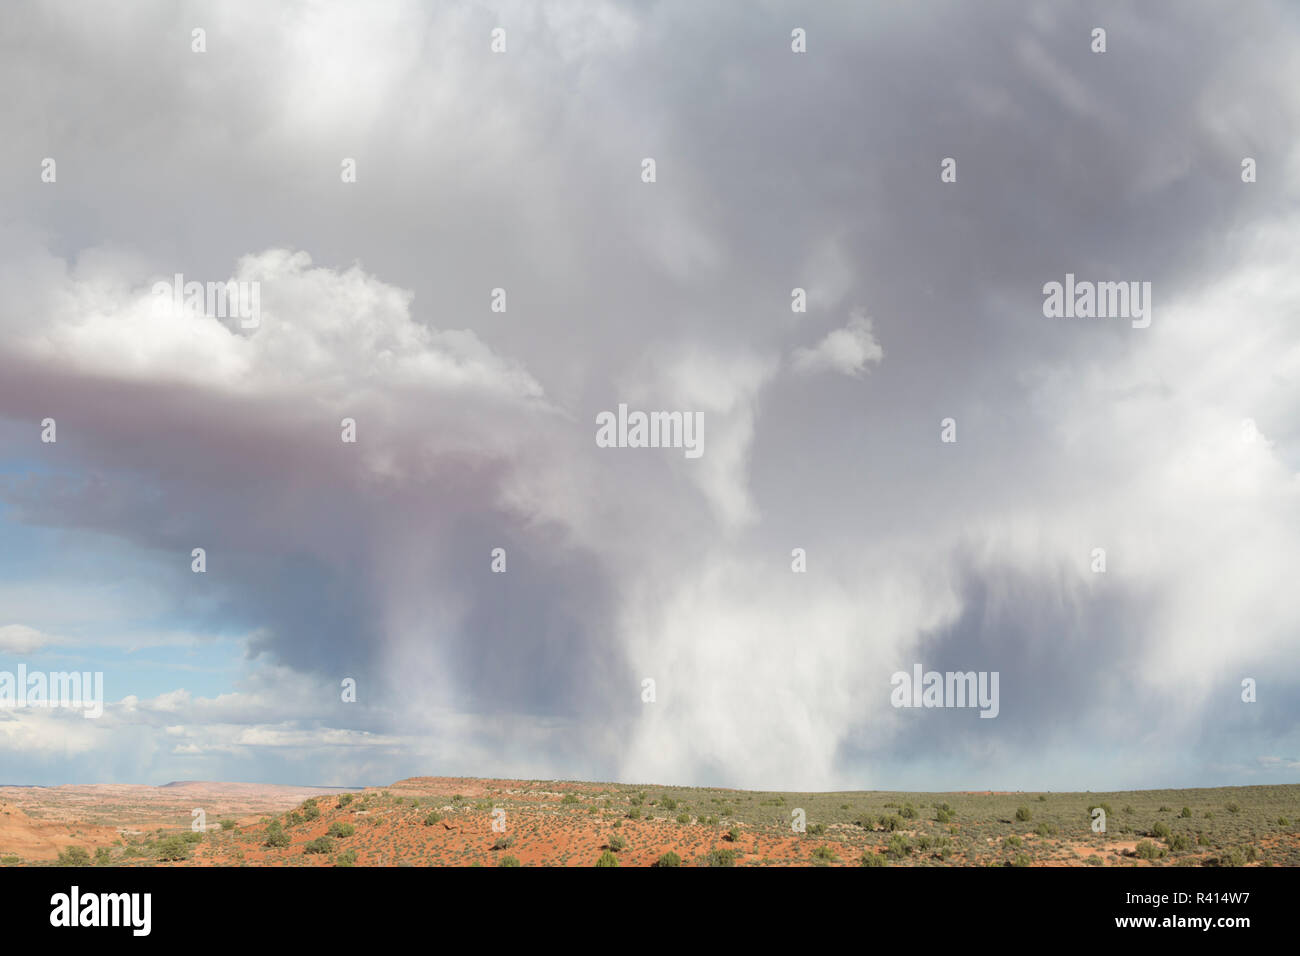 USA, Utah, Grand Staircase-Escalante National Monument. Cloud shapes over desert. - Stock Image